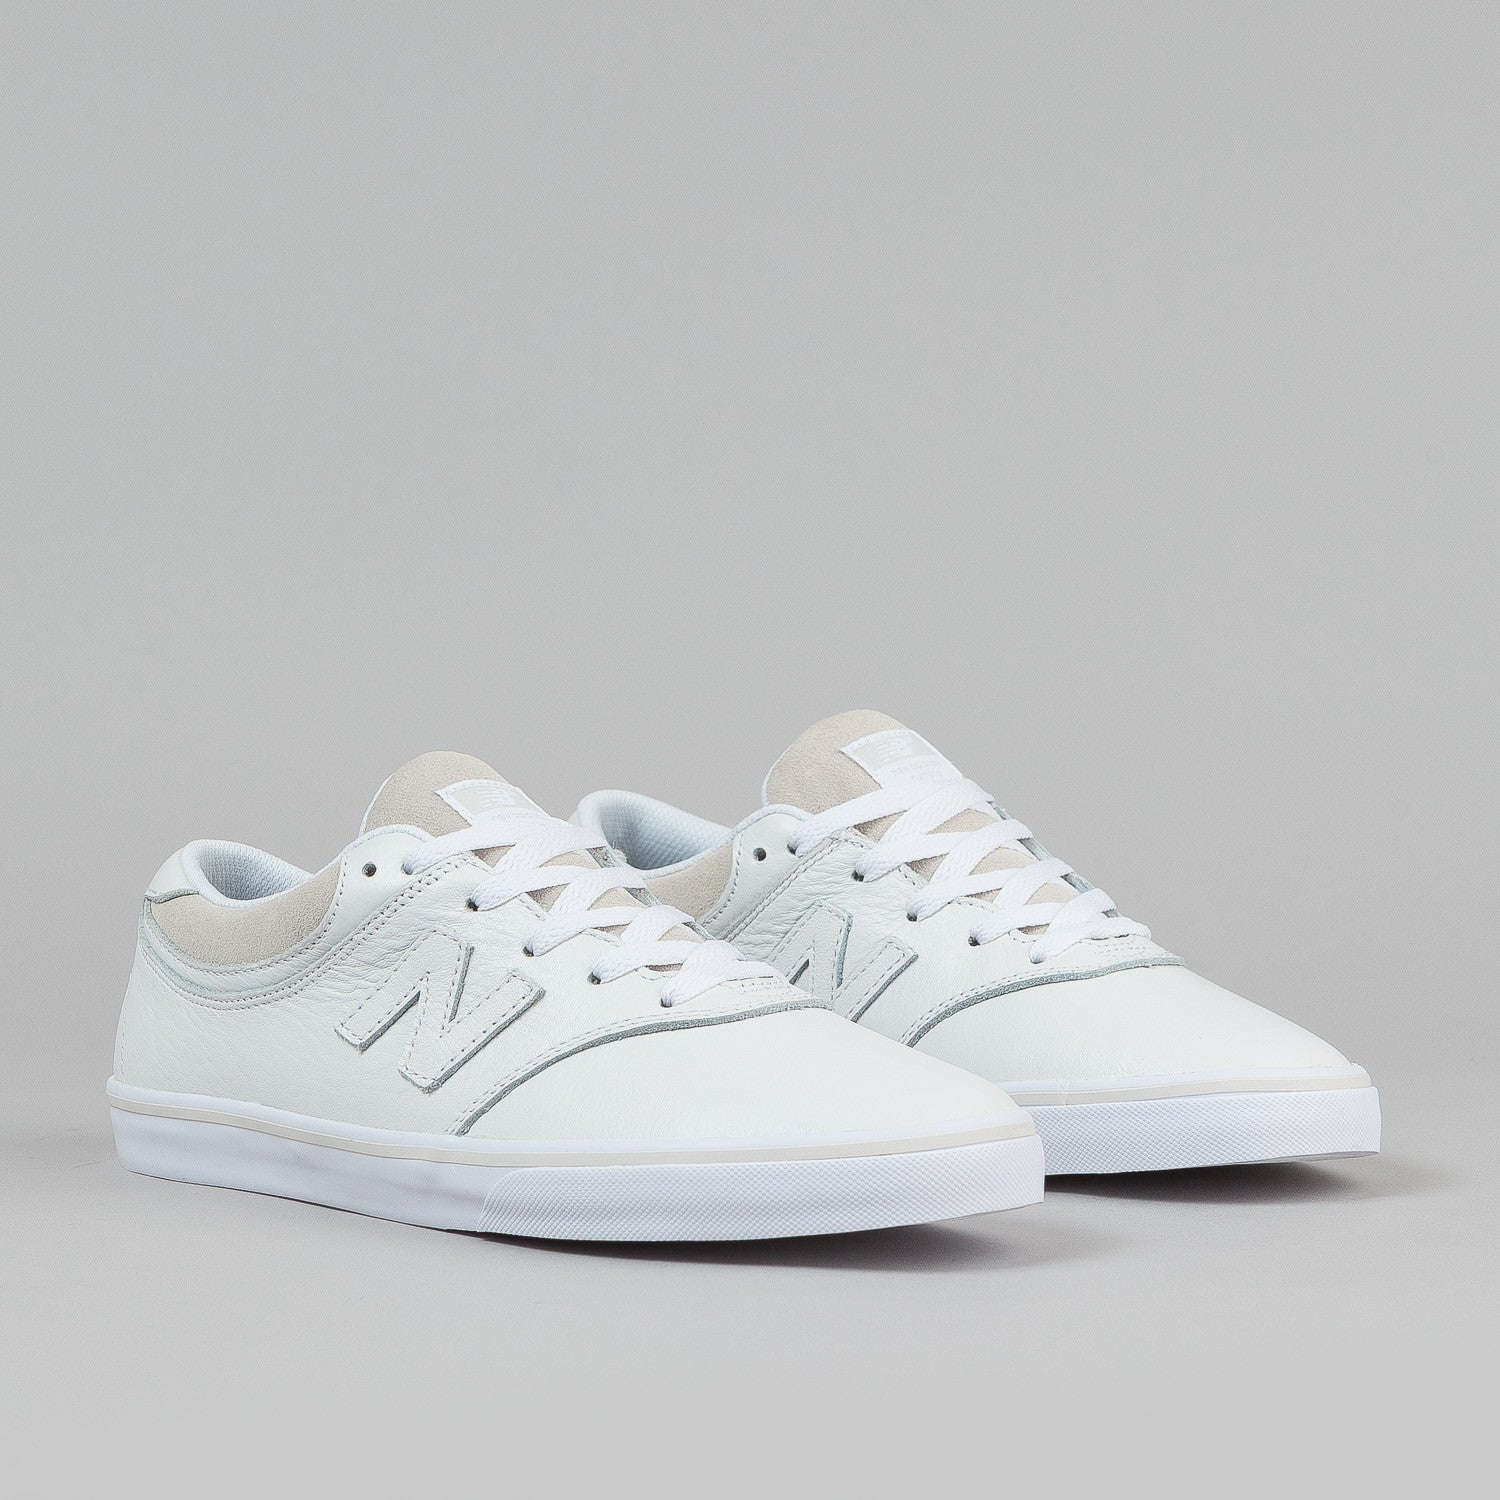 New Balance Numeric Quincy 254 Shoes - White